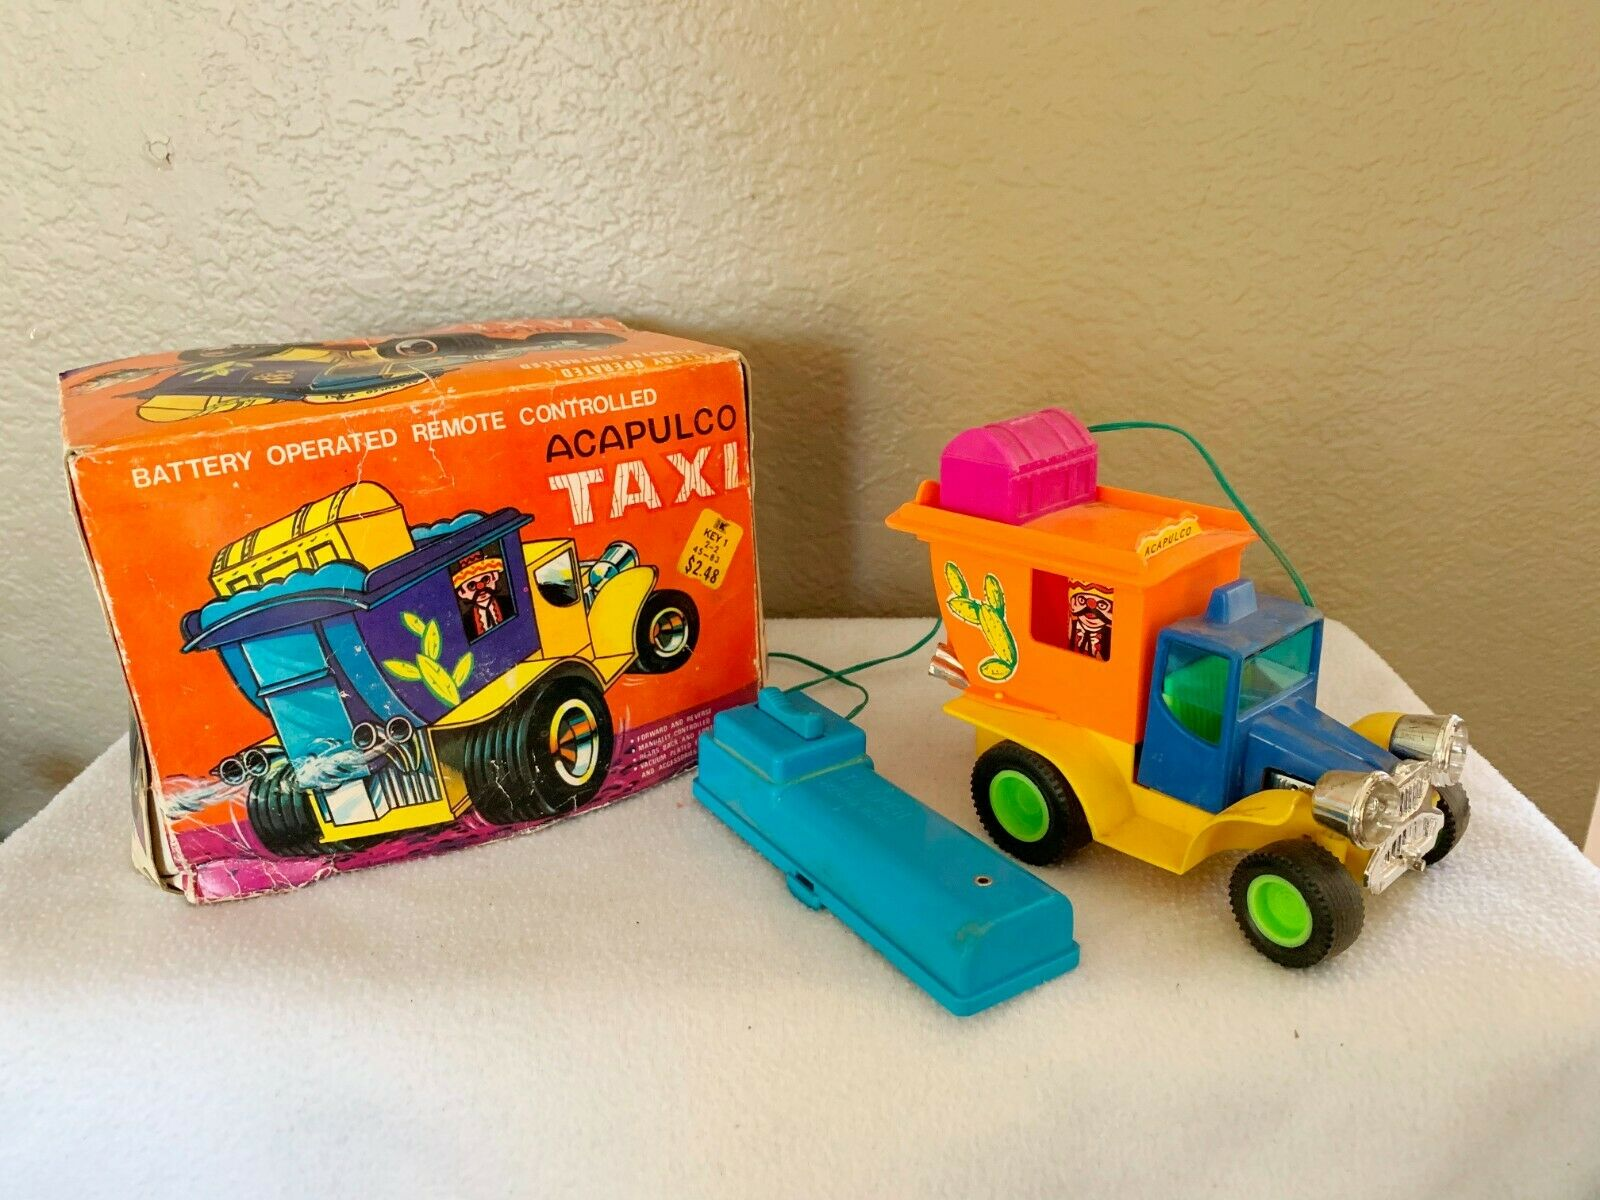 Vintage Alcapulco Taxi  Toy-Battery Remote Control by Marx--Hong Kong 1971